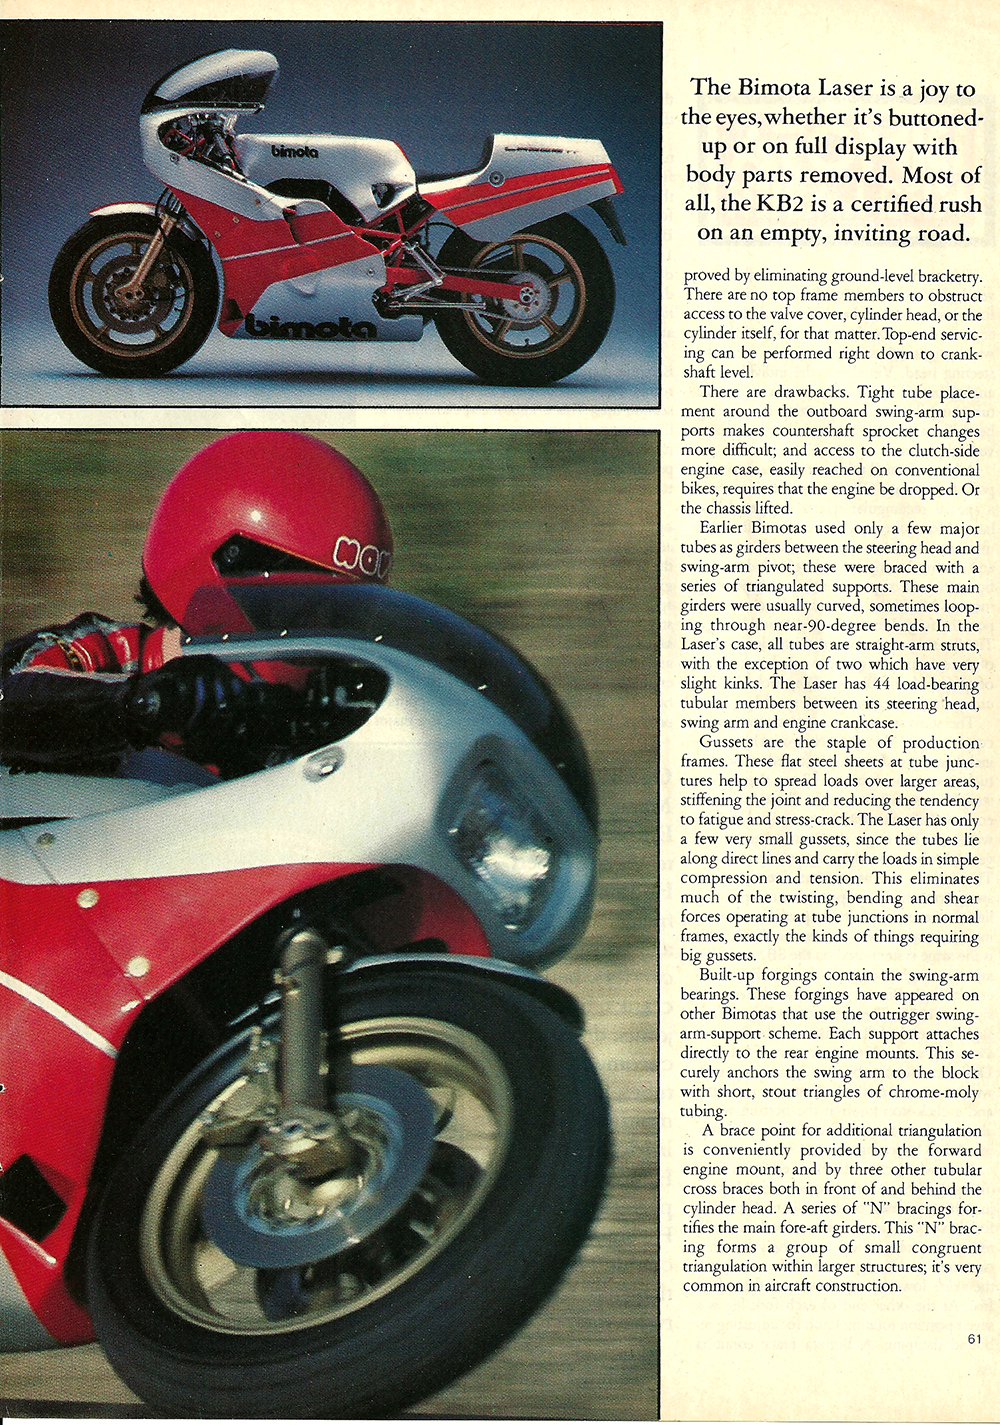 1982 Bimota KB2 Laser road test 4.jpg